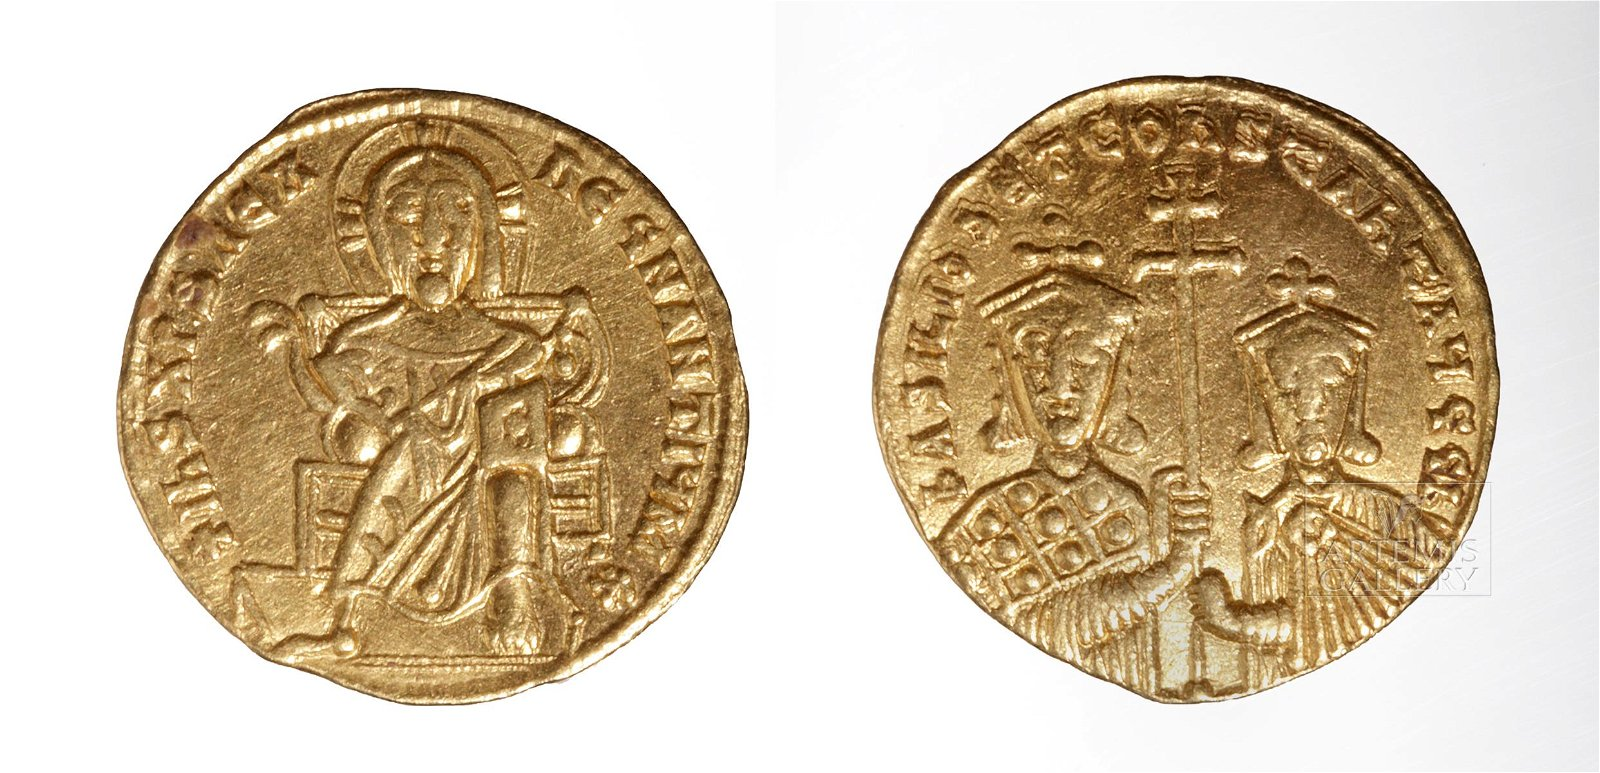 Byzantine Basil I Constantinople Gold Solidus - 4.3 g